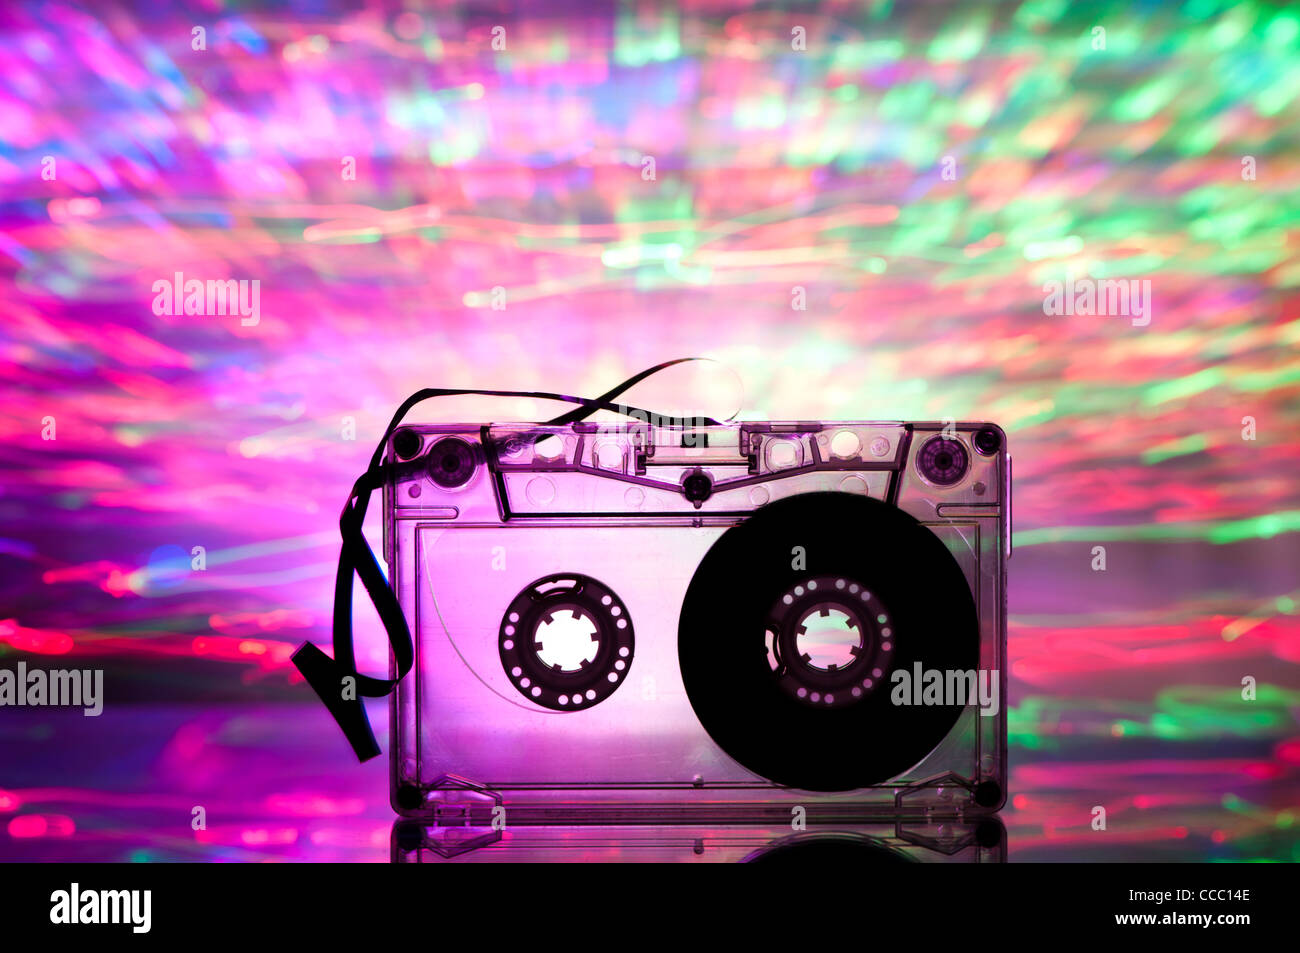 Cassette tape and multicolored pink blue lights on background - Stock Image